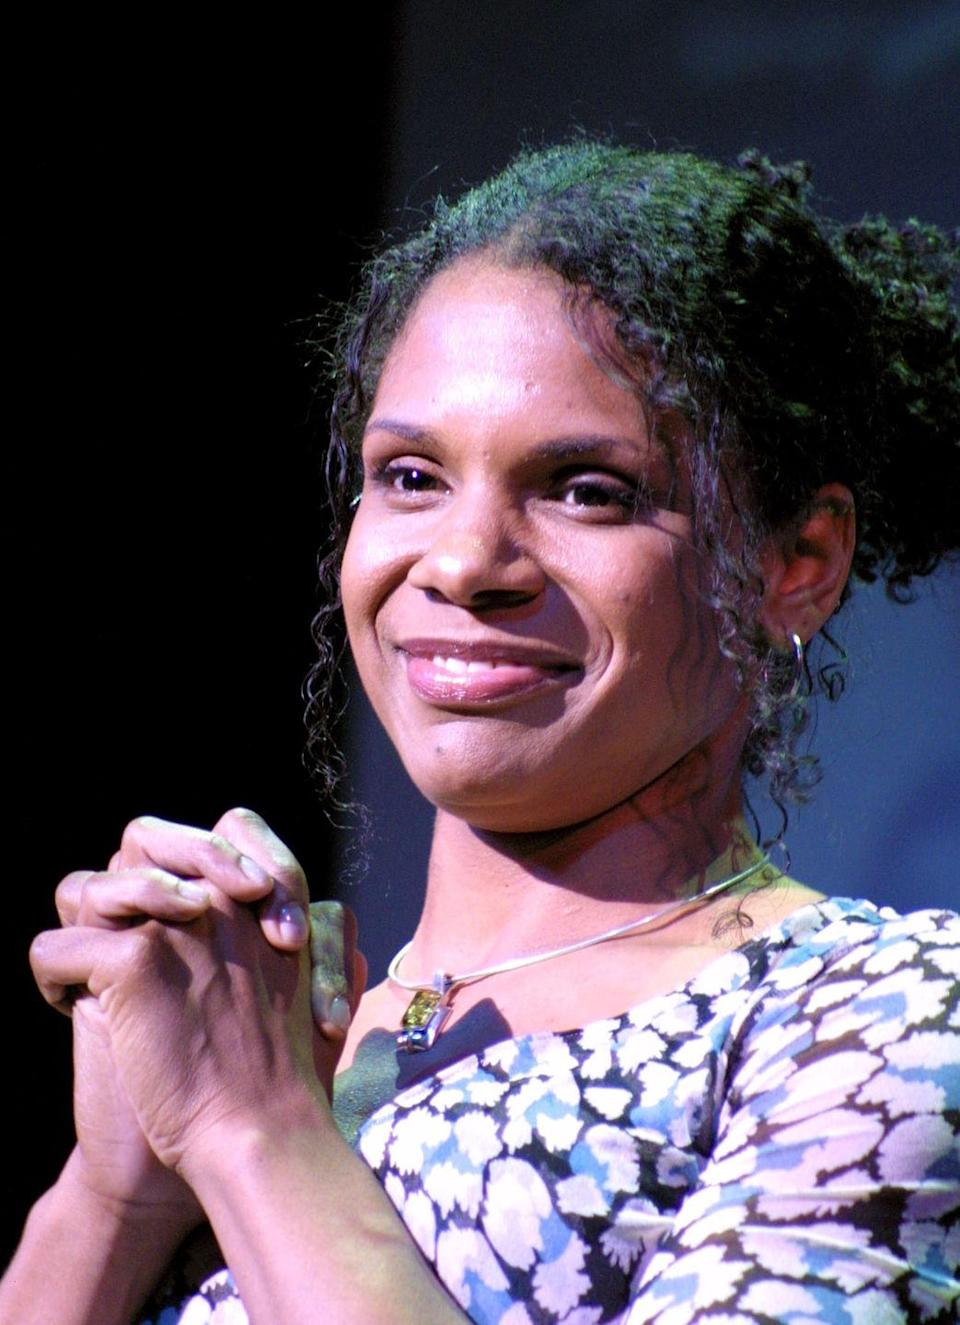 <p>Audra McDonald made her mark on Broadway with her role as a replacement in <em>The Secret Garden</em> in 1992. But her breakthrough came the same year in <em>Carousel, </em>where she won her first (of six!) Tony Awards. Aside from acting, McDonald has a successful recording career. She had a long-running role on ABC's <em>Private Practice </em>and is slated to appear in <em>Respect, </em>a 2021 film about Aretha Franklin.</p>